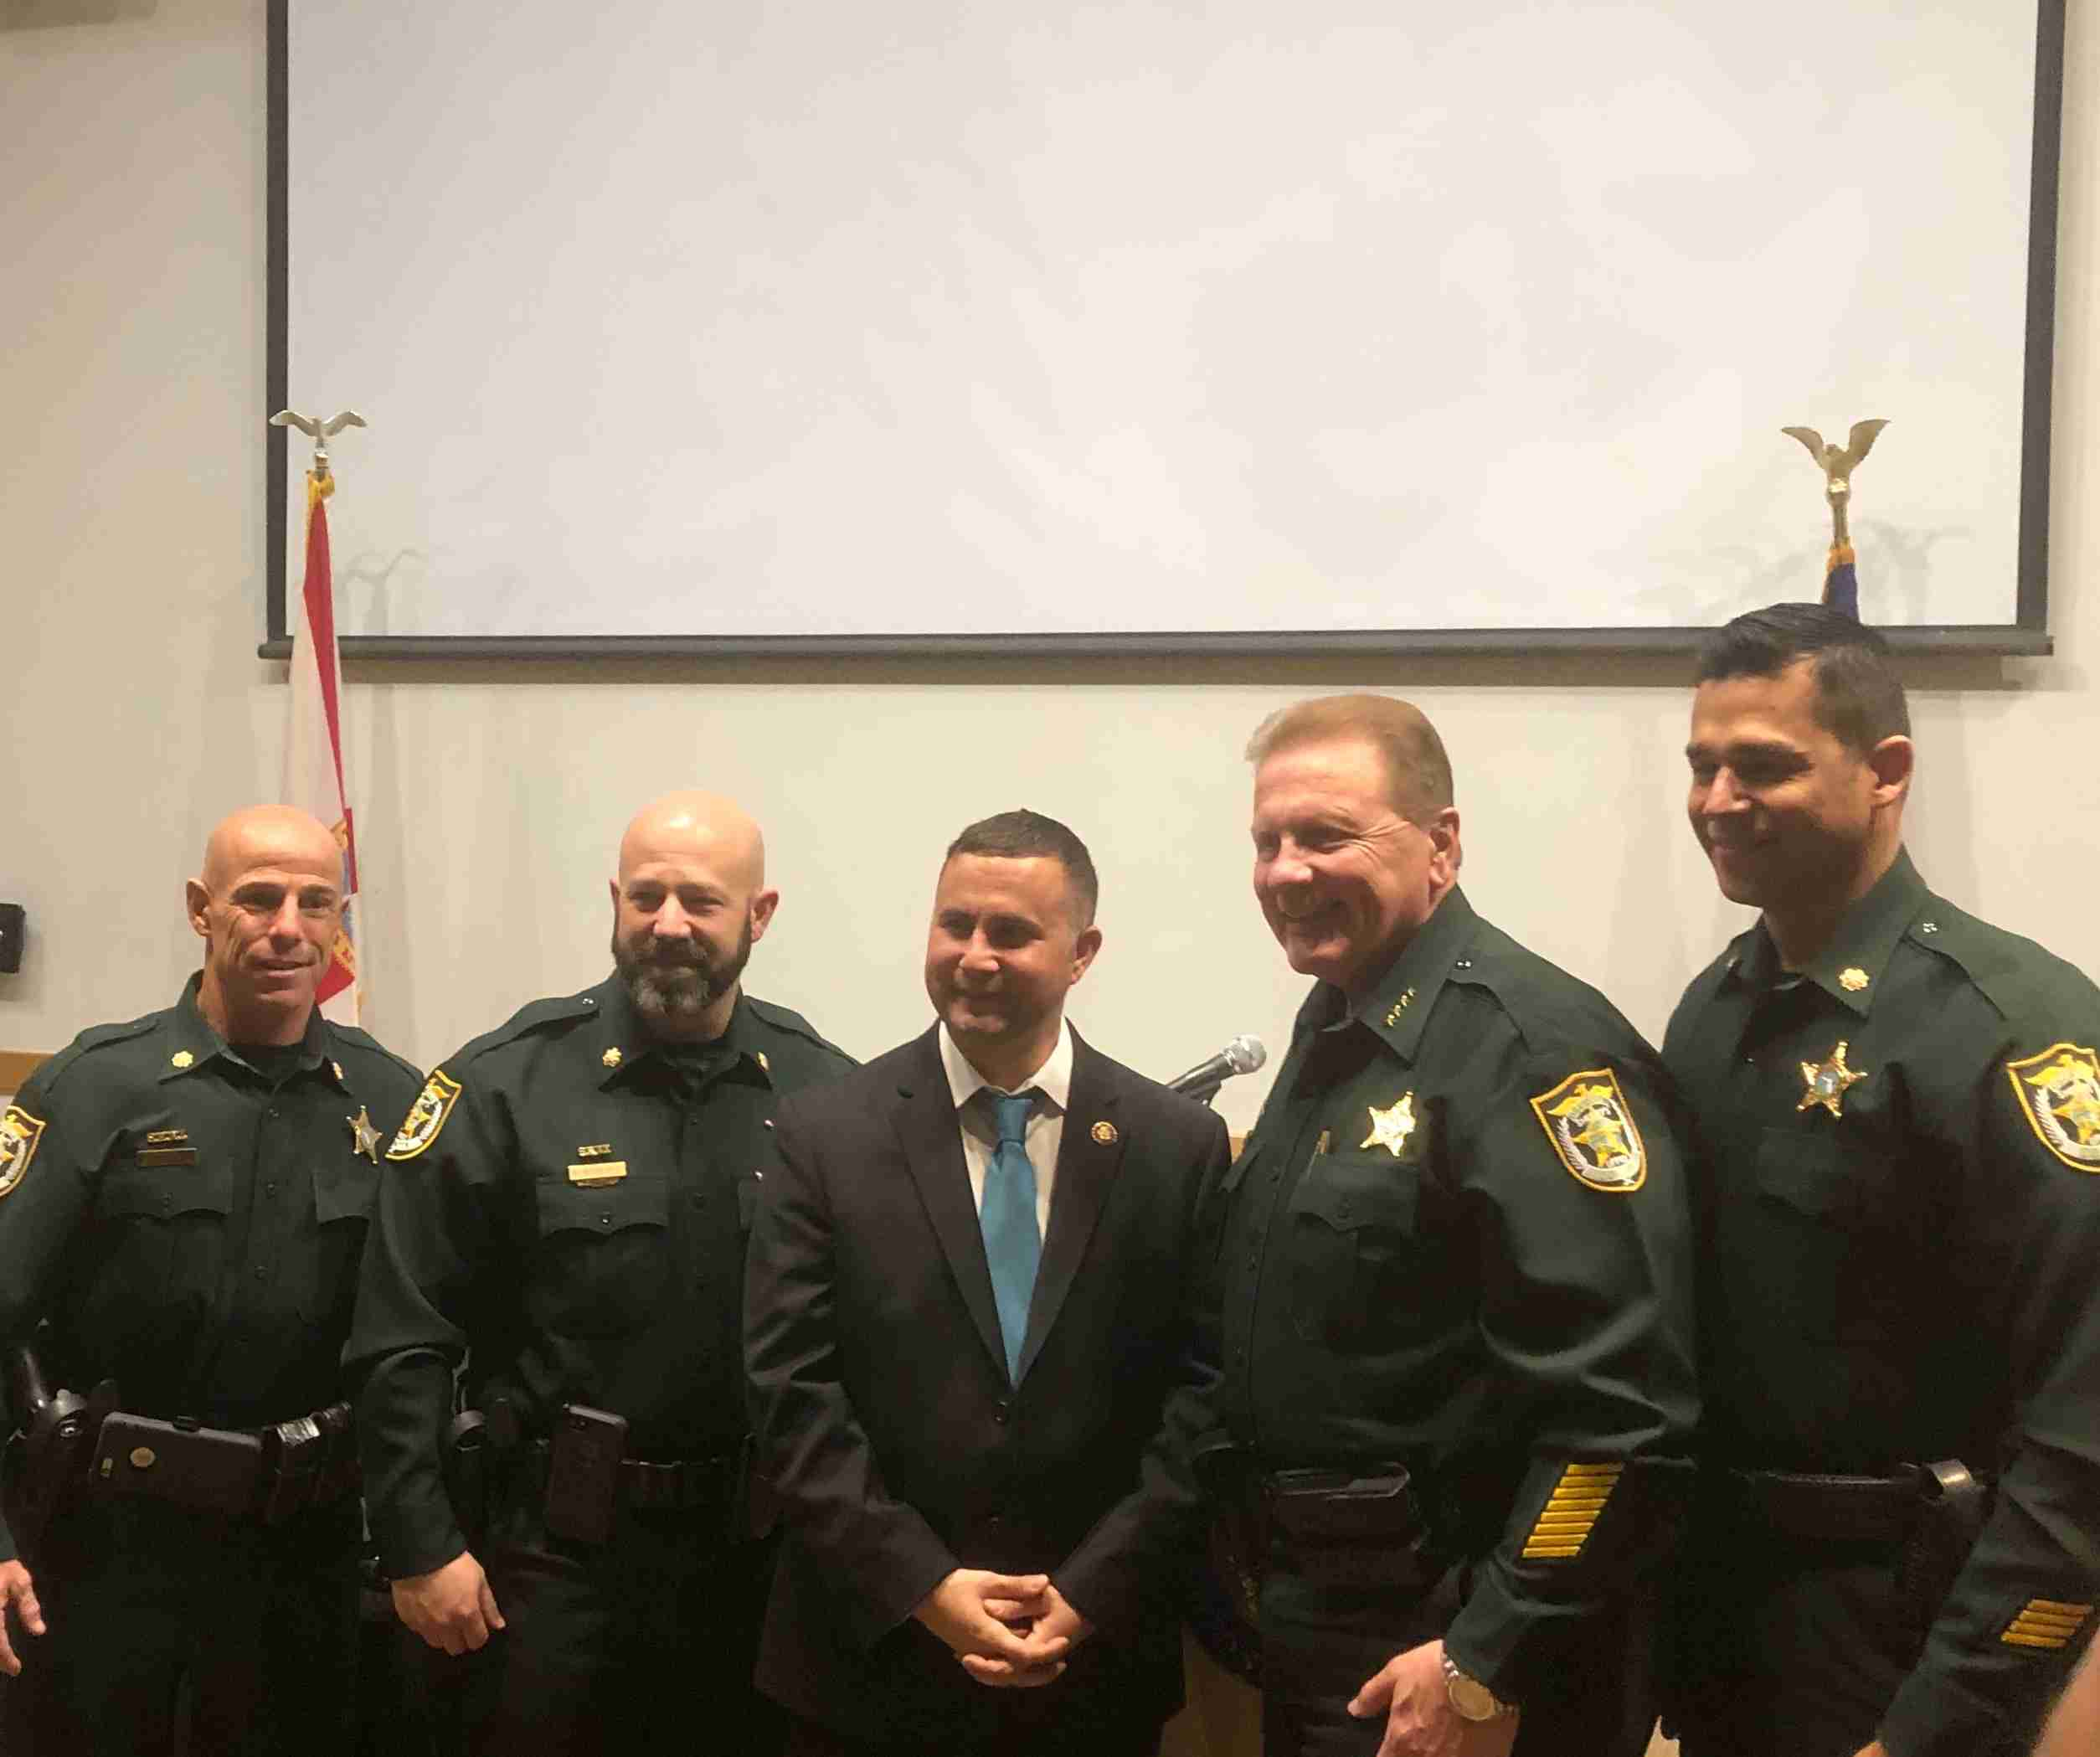 Congressman Darren Soto (center) poses with members of the Osceola County Sheriff's Office